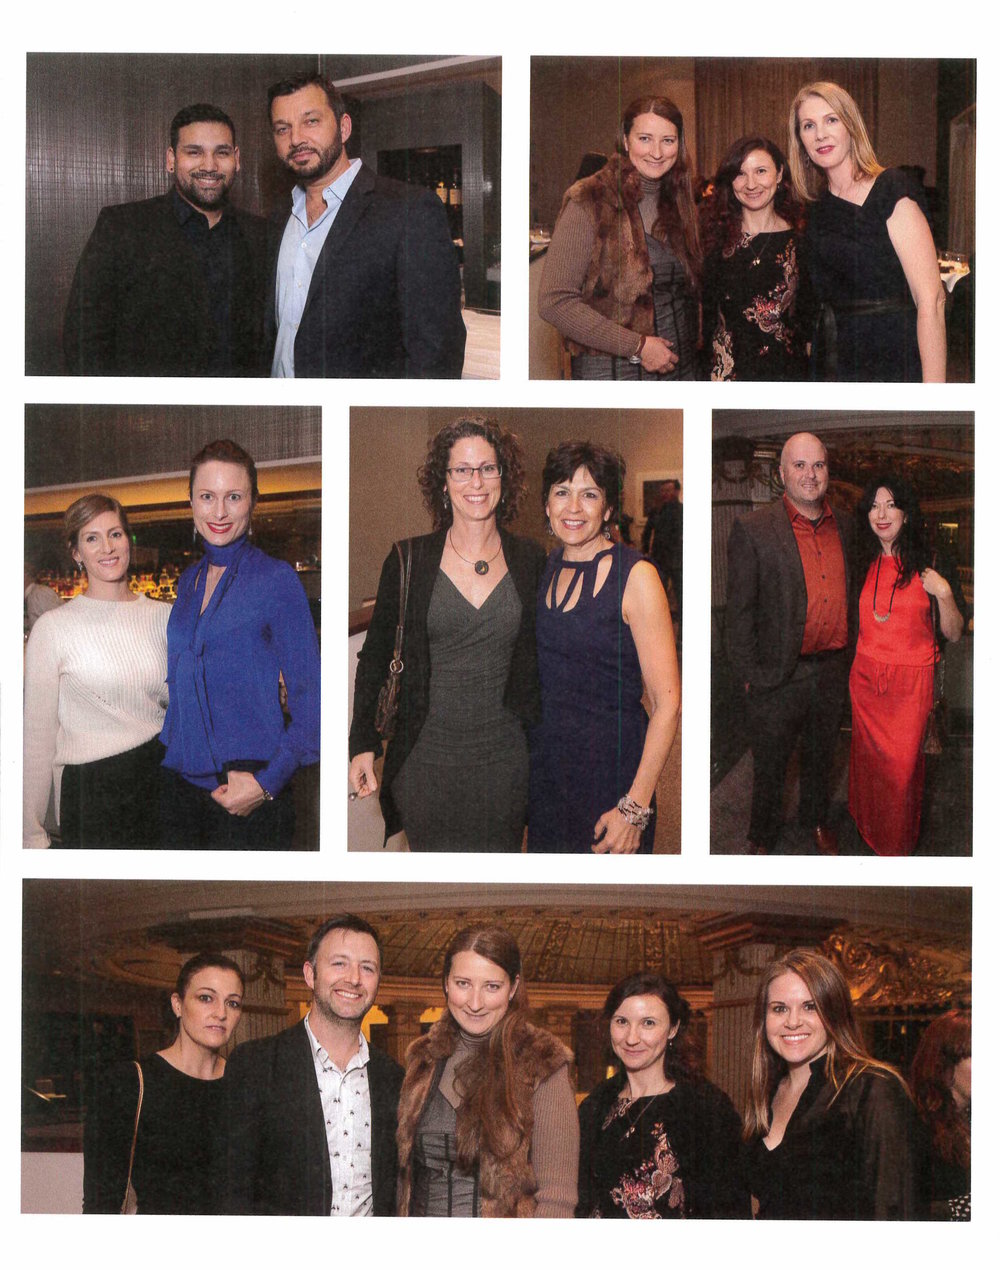 A magazine spread shows attendees of the California Home + Design Awards, including Kate Stickley, Gretchen Whittier, Vera Gates and Nicole Bemboom